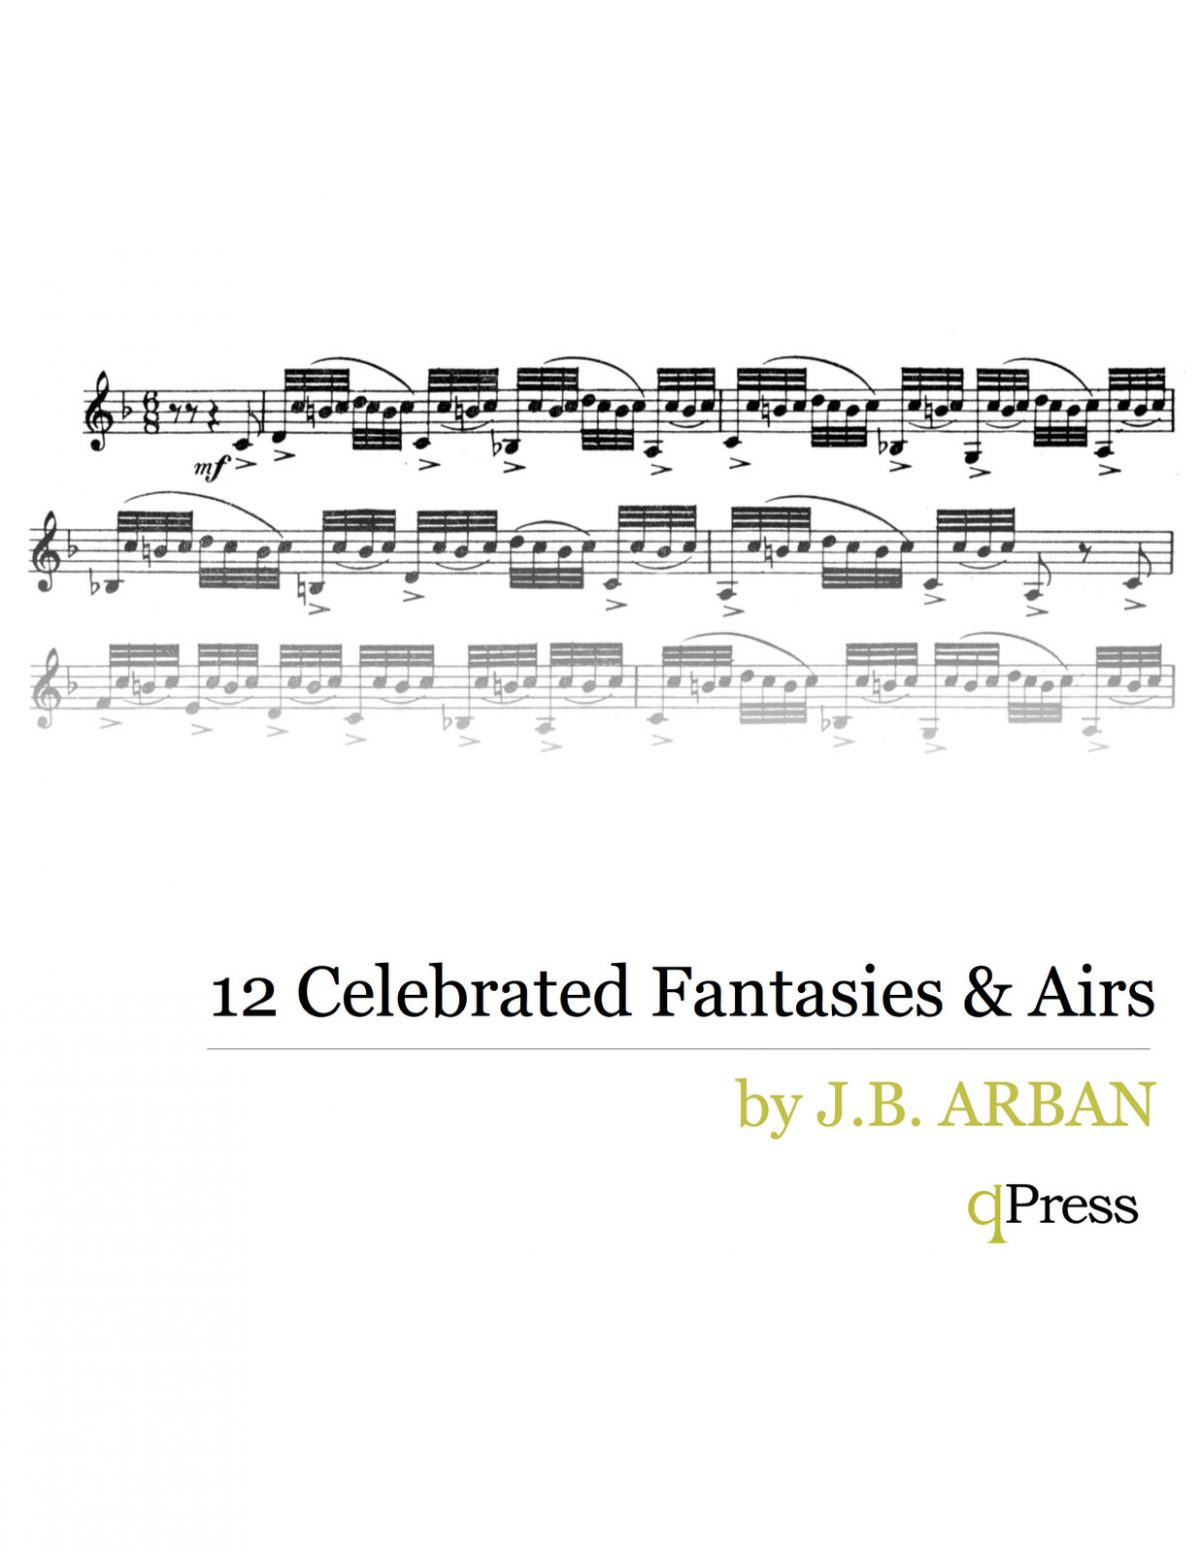 Arban, 12 Celebrated Fantasies and Airs Solo